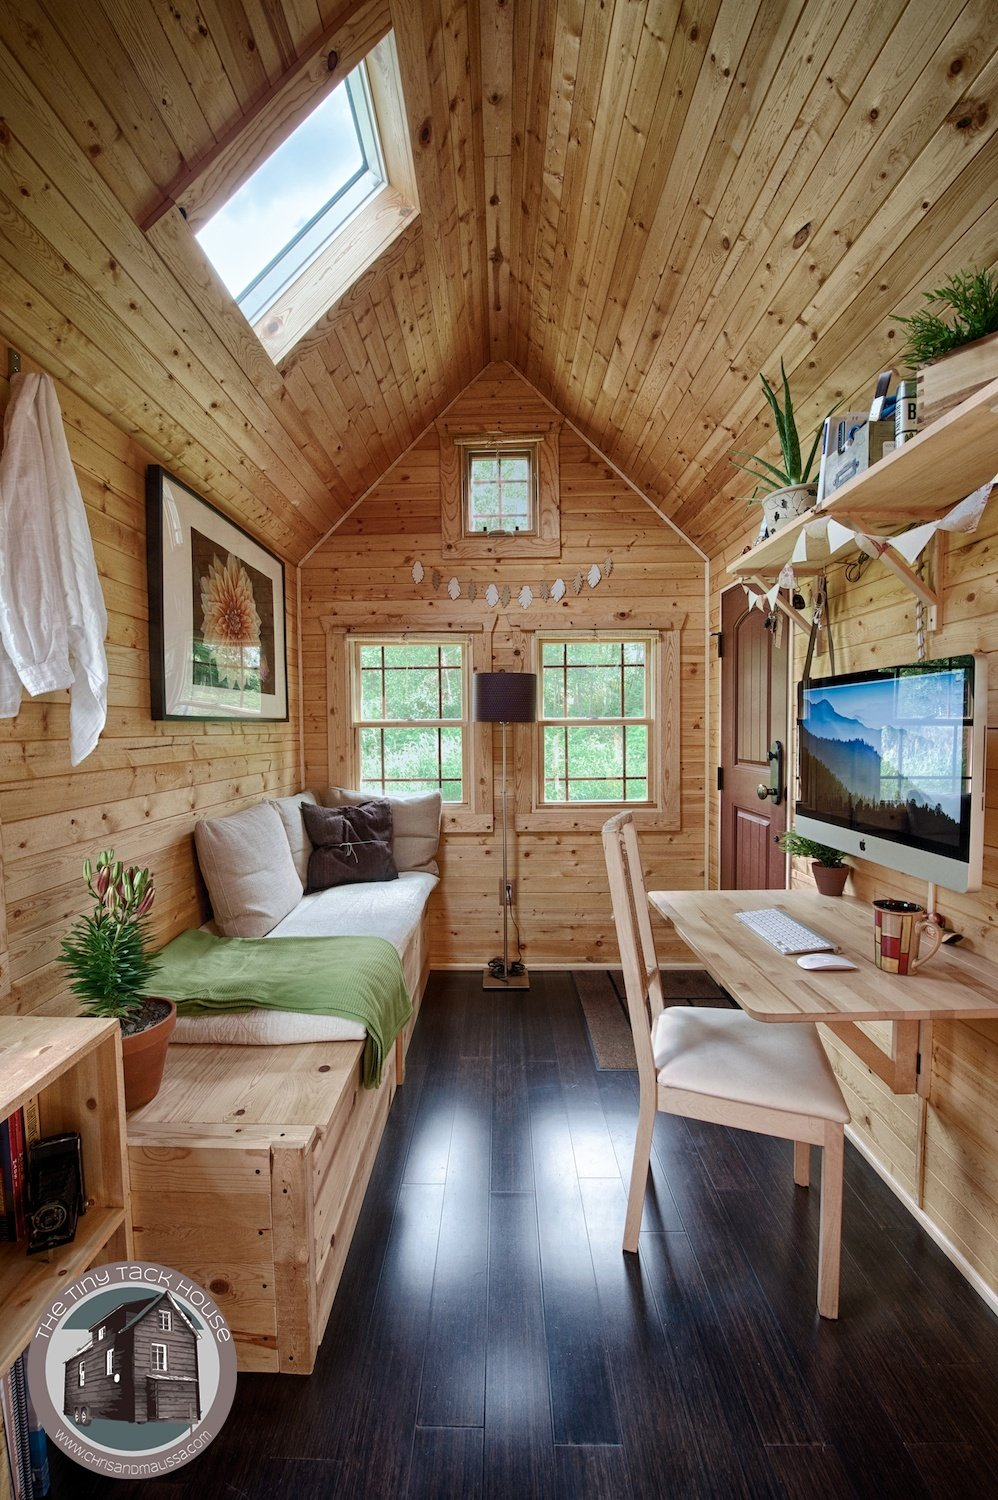 16 tiny houses you wish you could live in for Small house interior